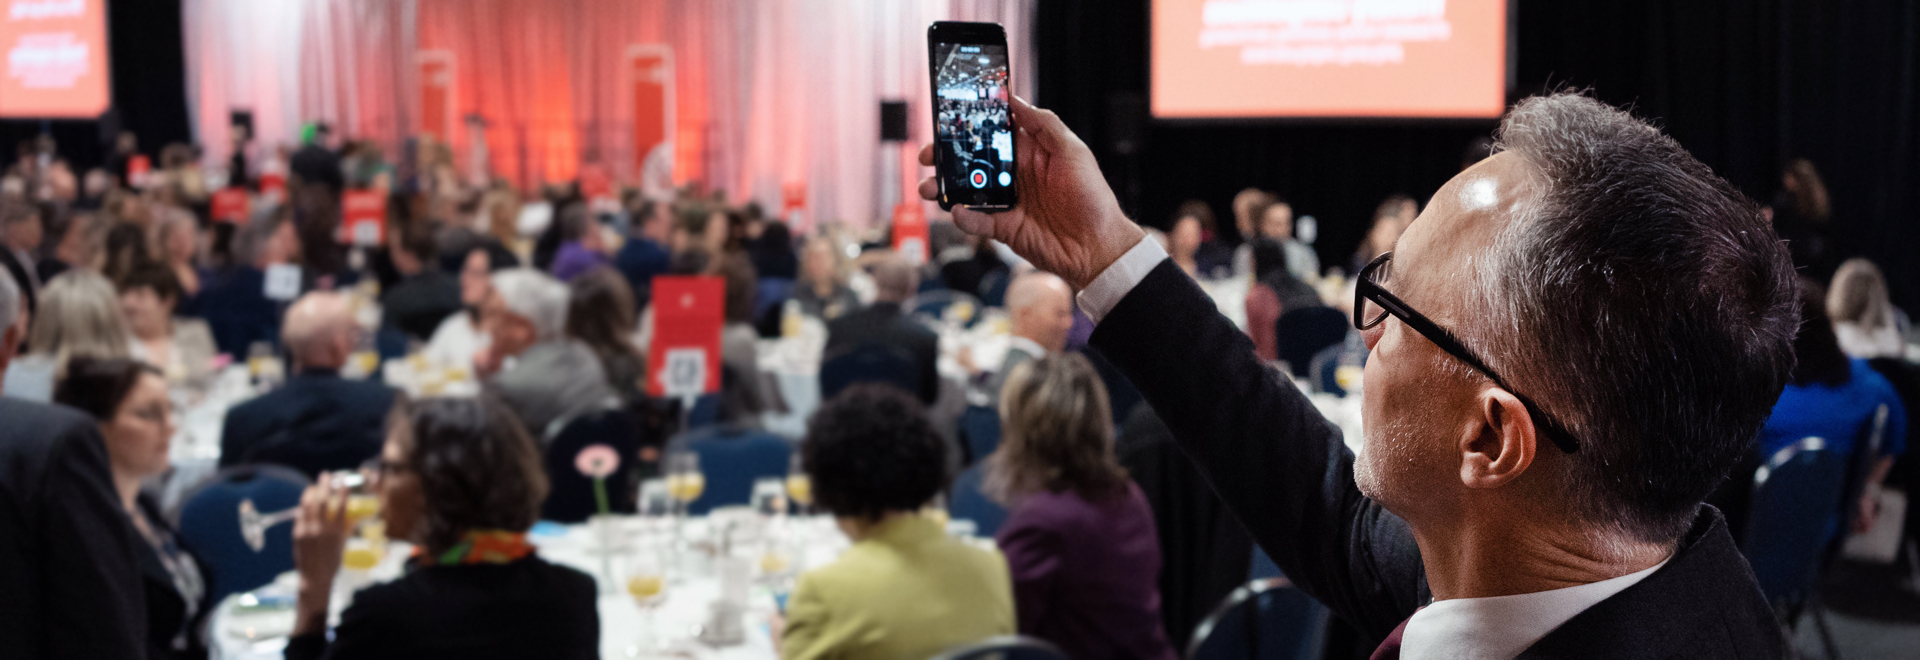 Person taking photo with their cell phone of a busy gala dinner.